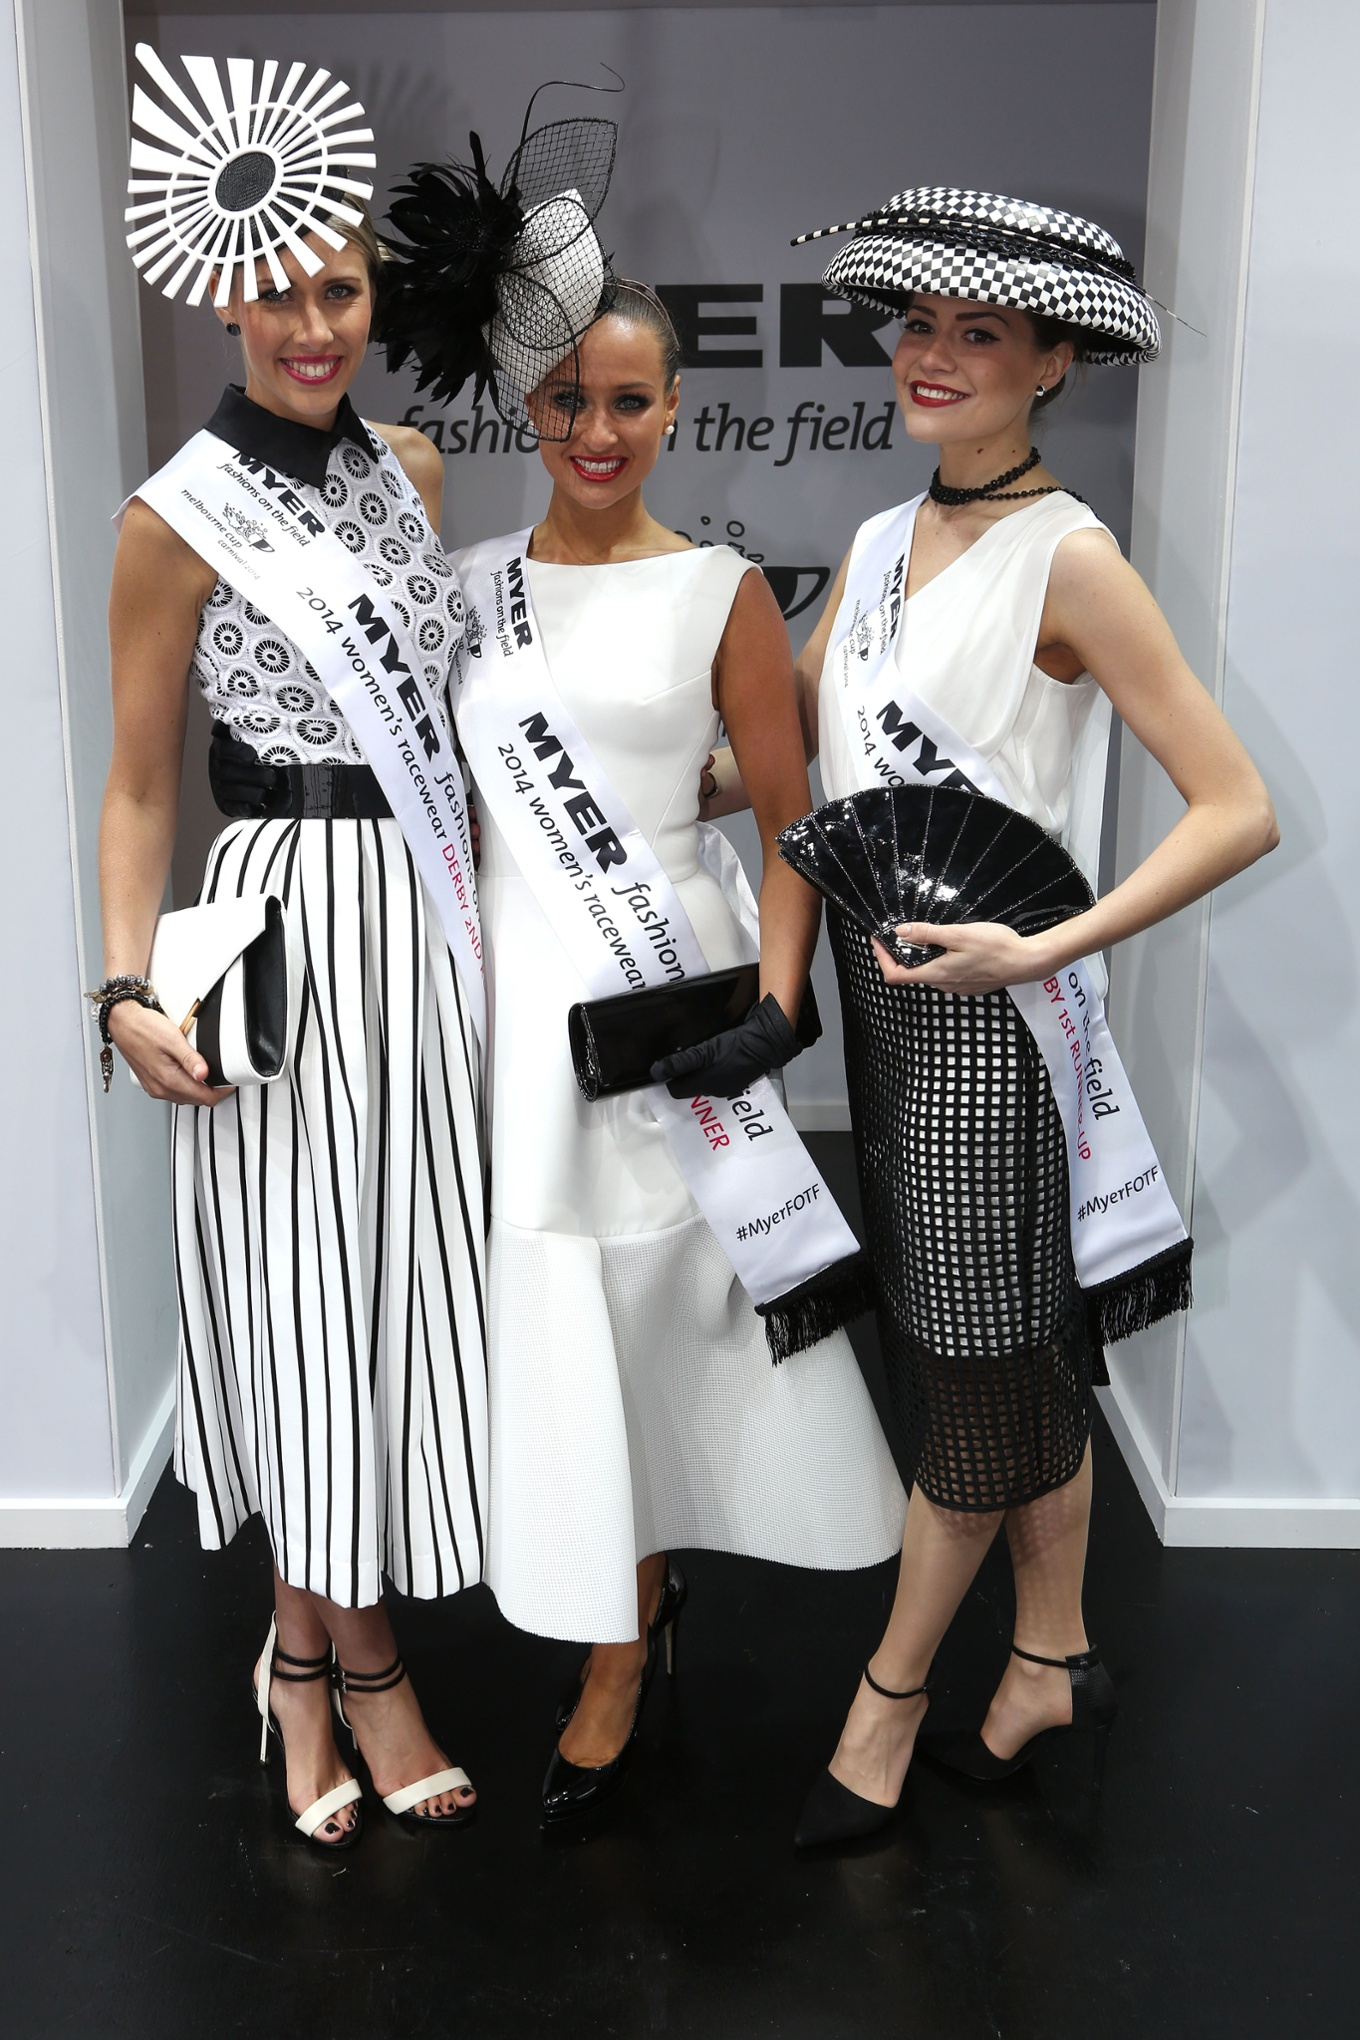 Melbourne Cup fashion 2014 Derby Day hats in pictures